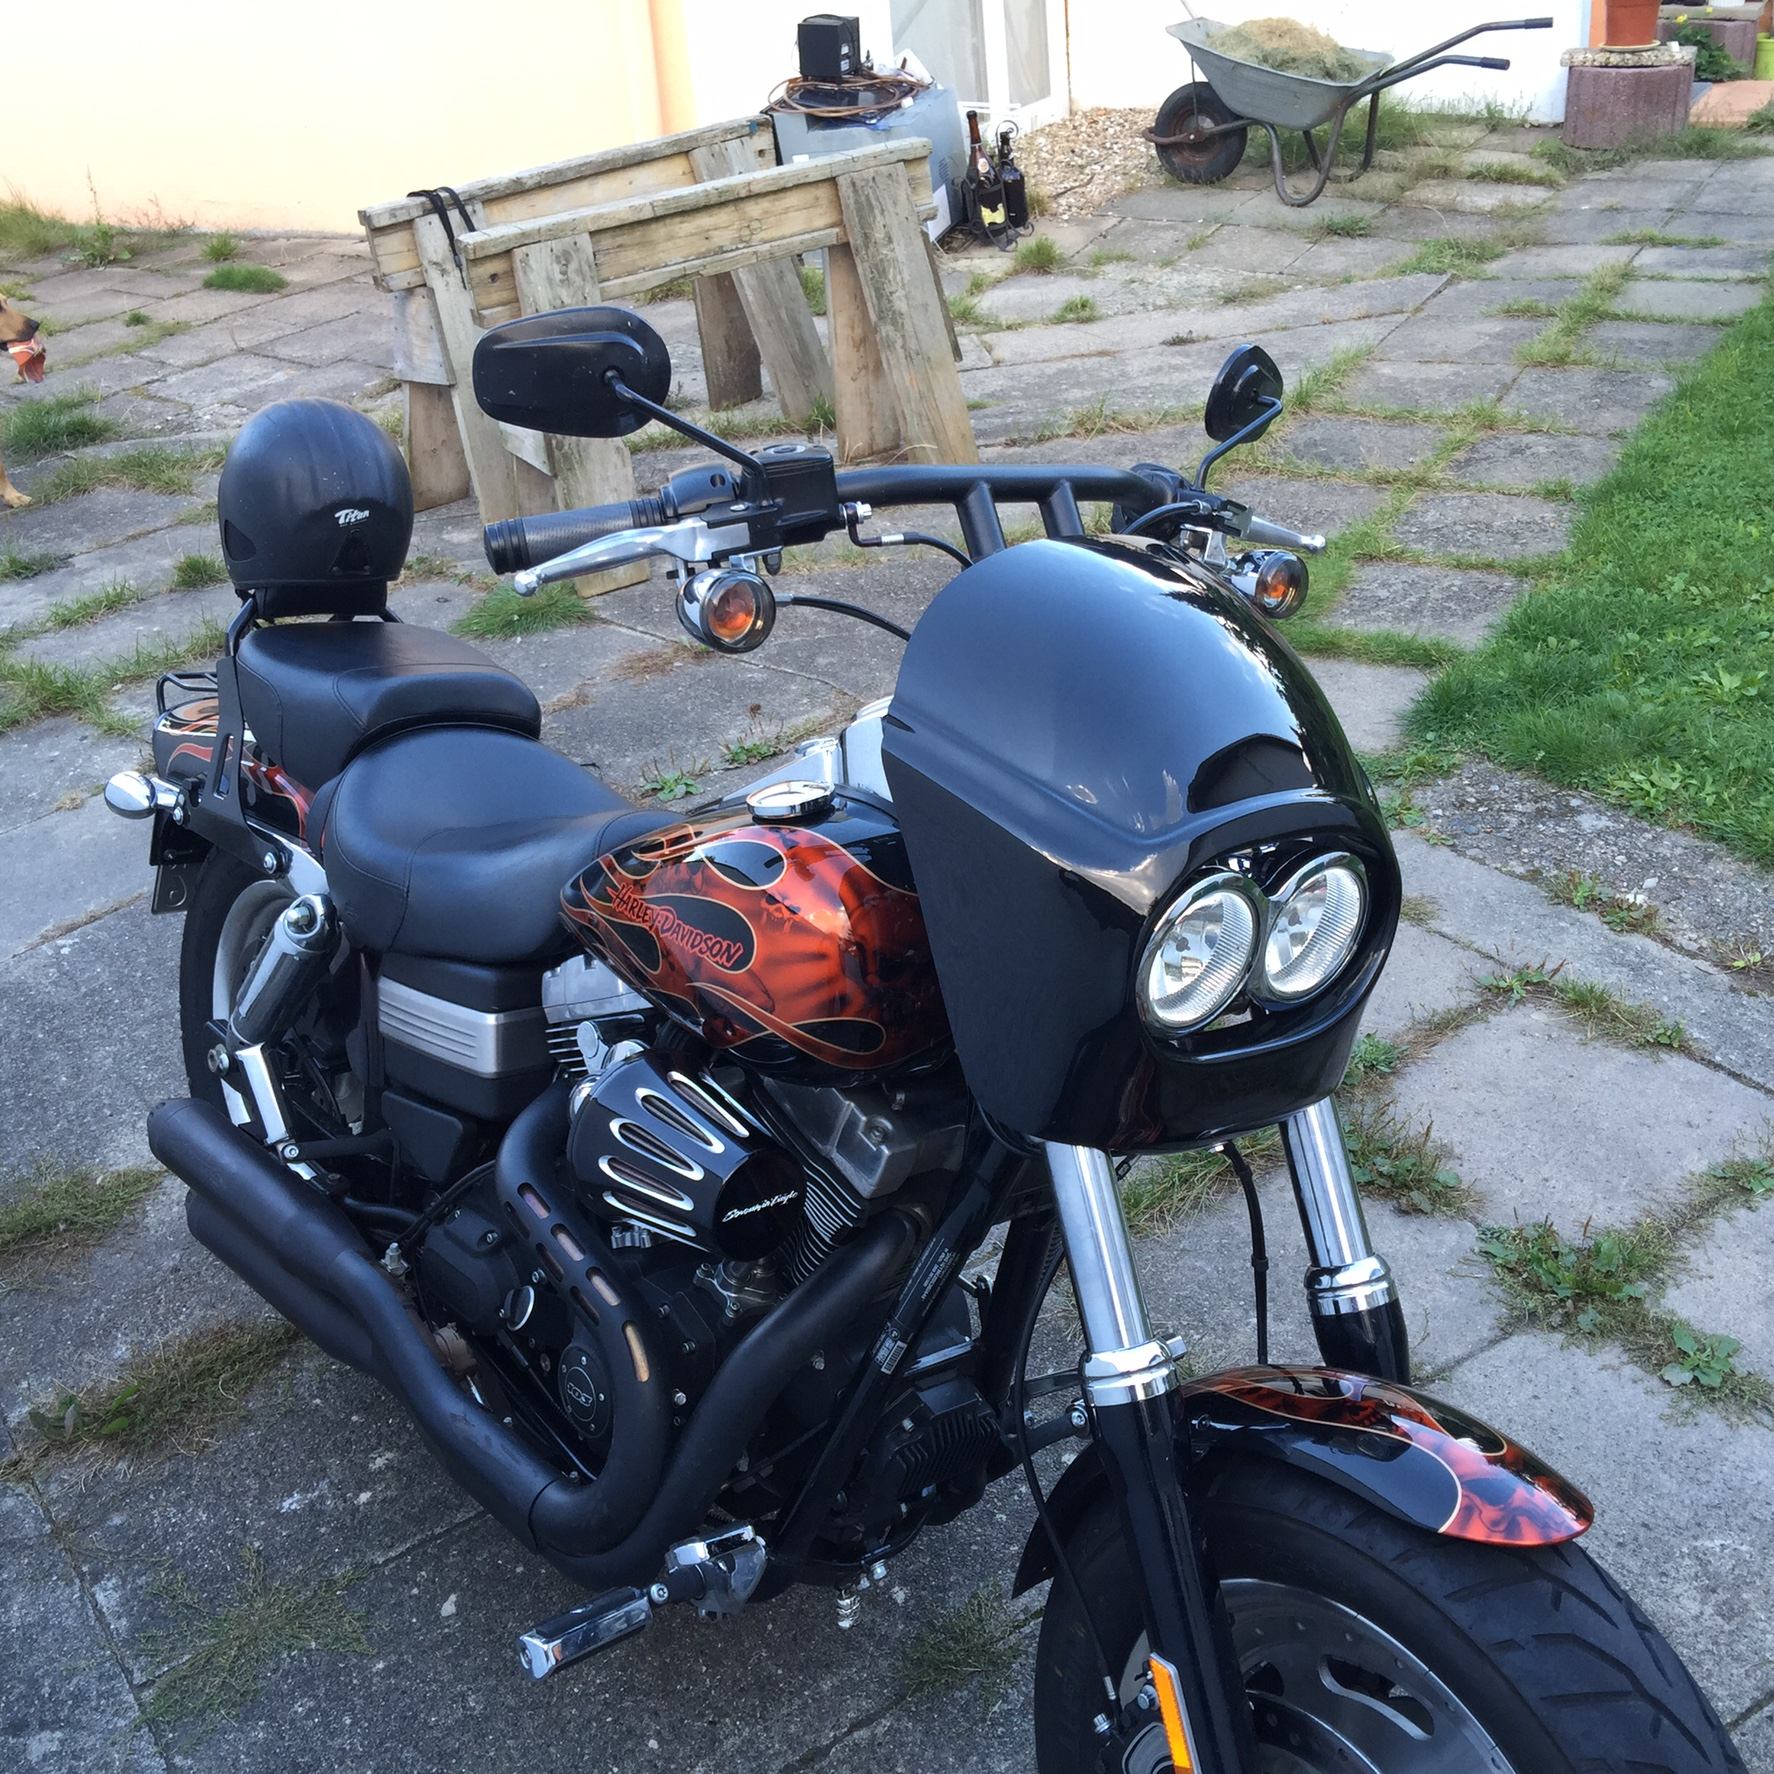 THE FXDF FATBOB ROCKET FAIRING KIT